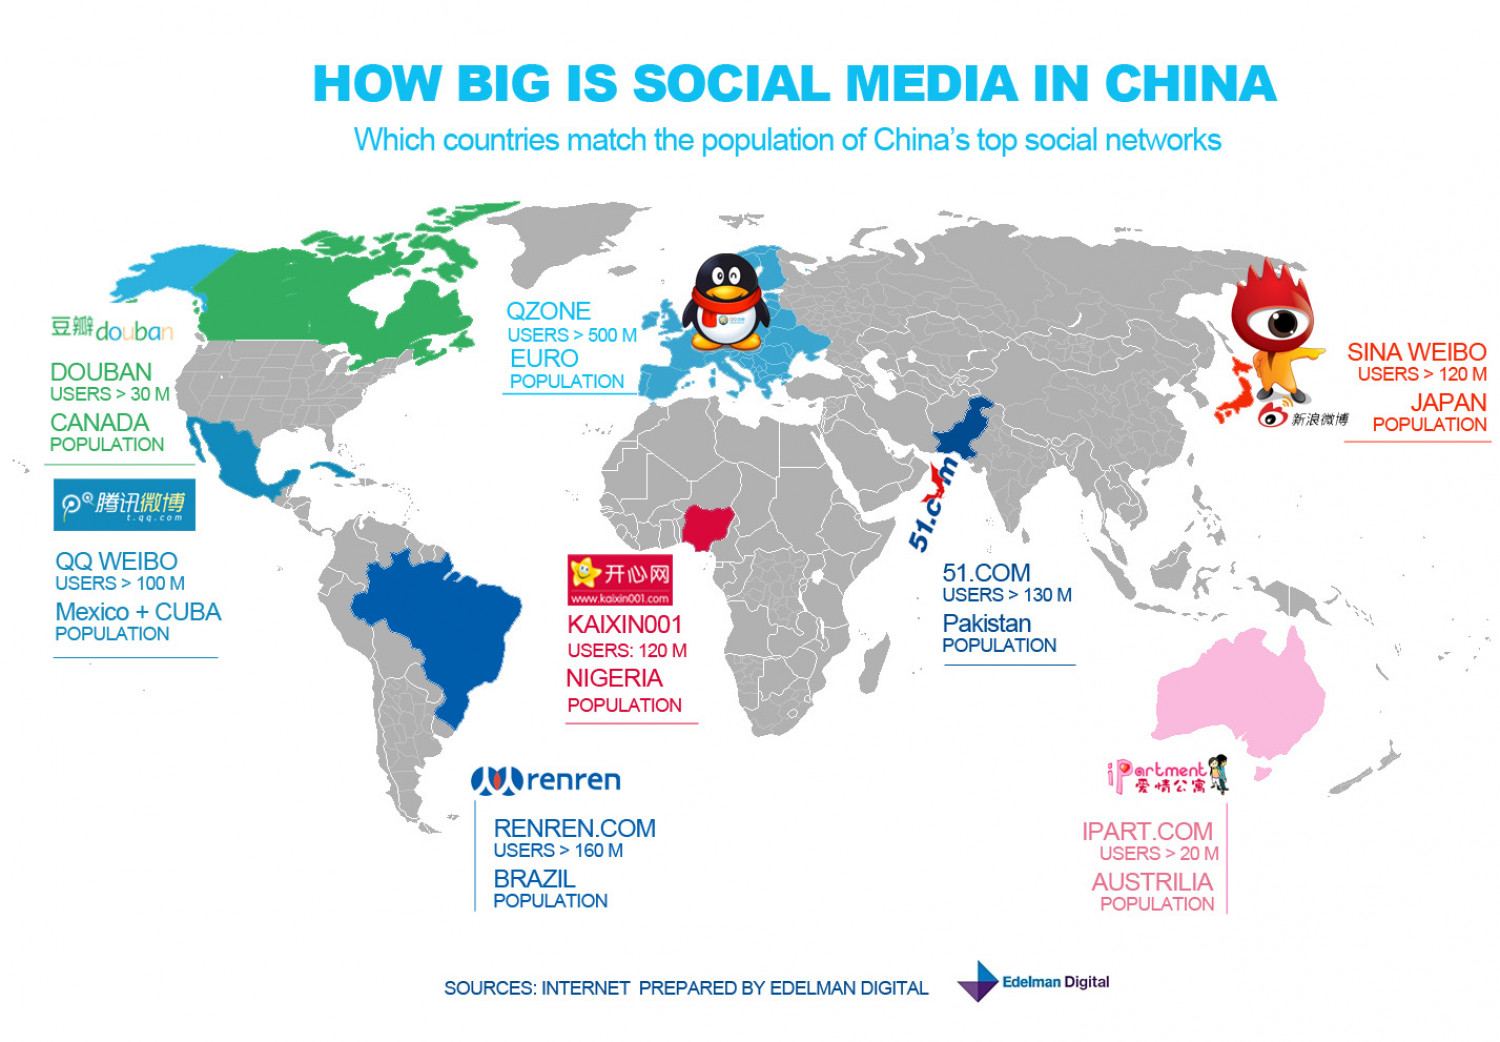 How Big is Social Media in China? Infographic